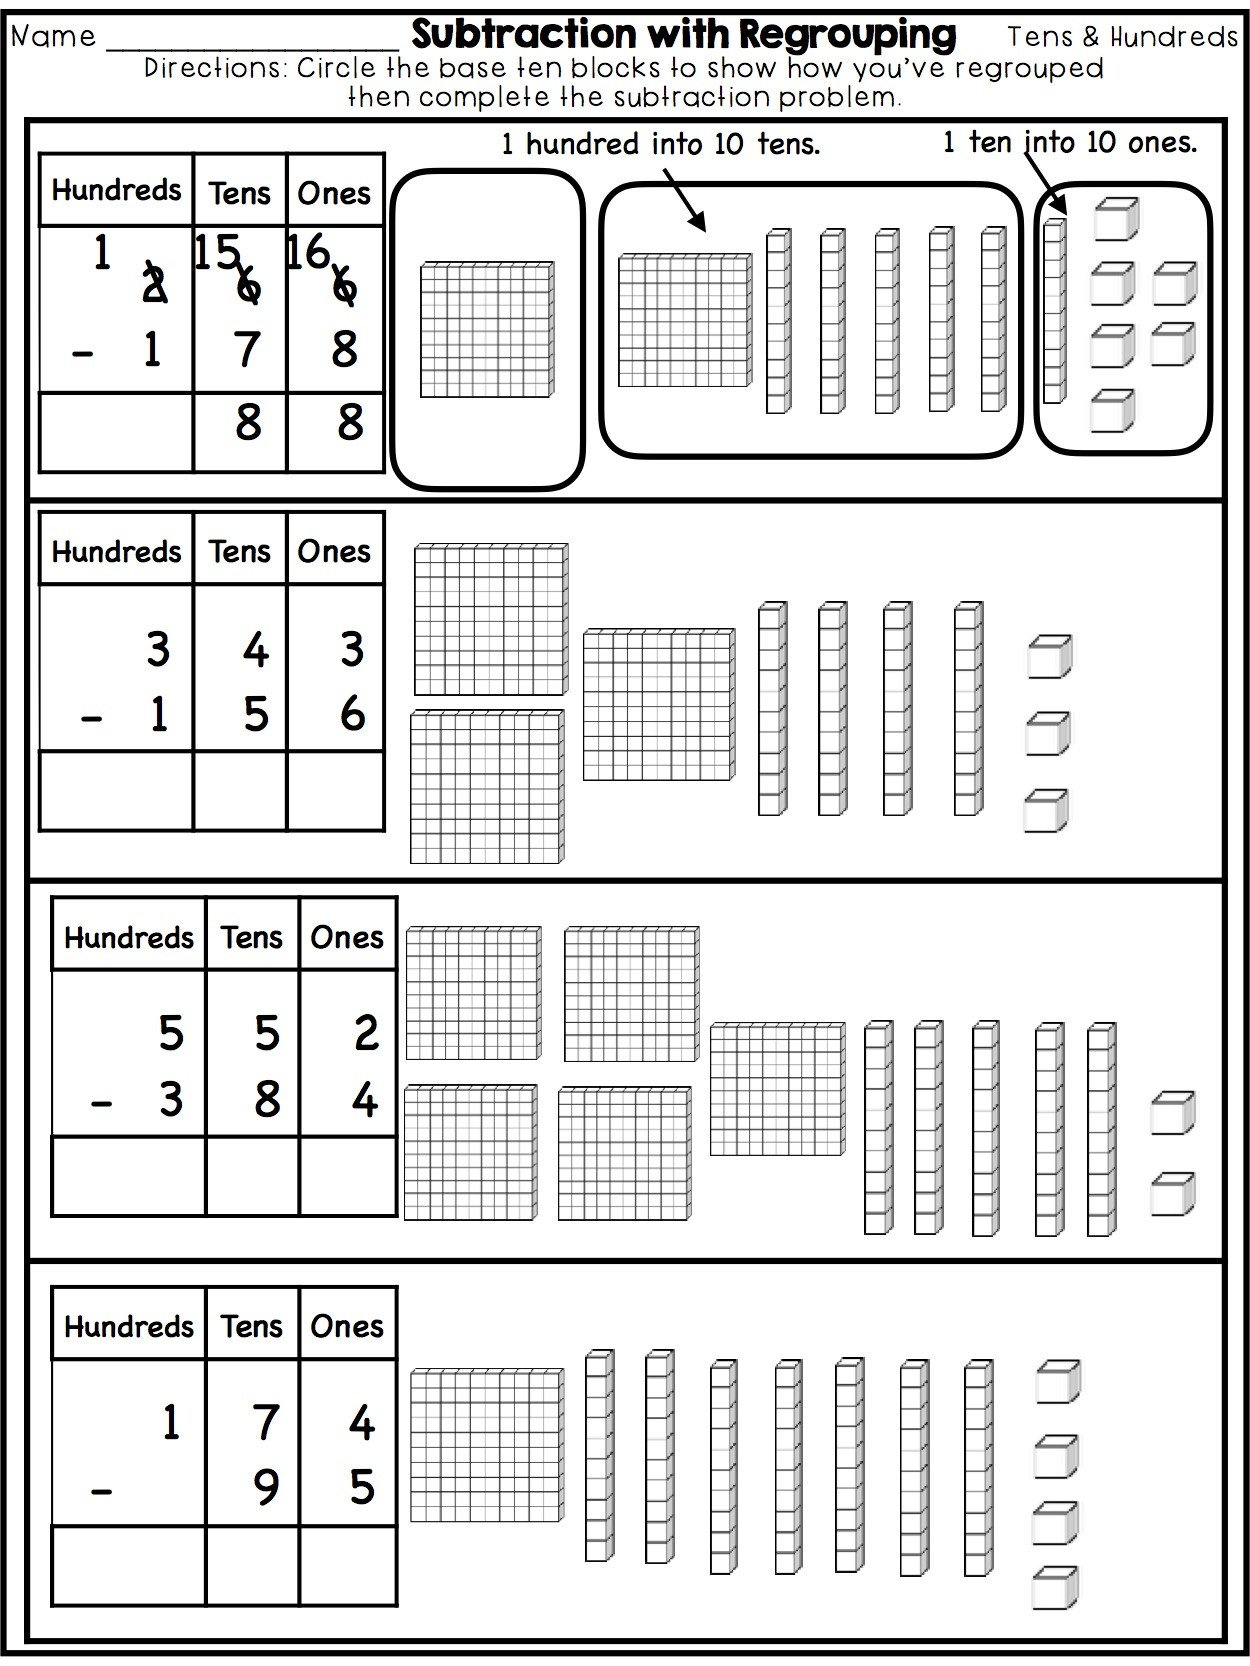 Subtraction with Regrouping Three Digit Numbers